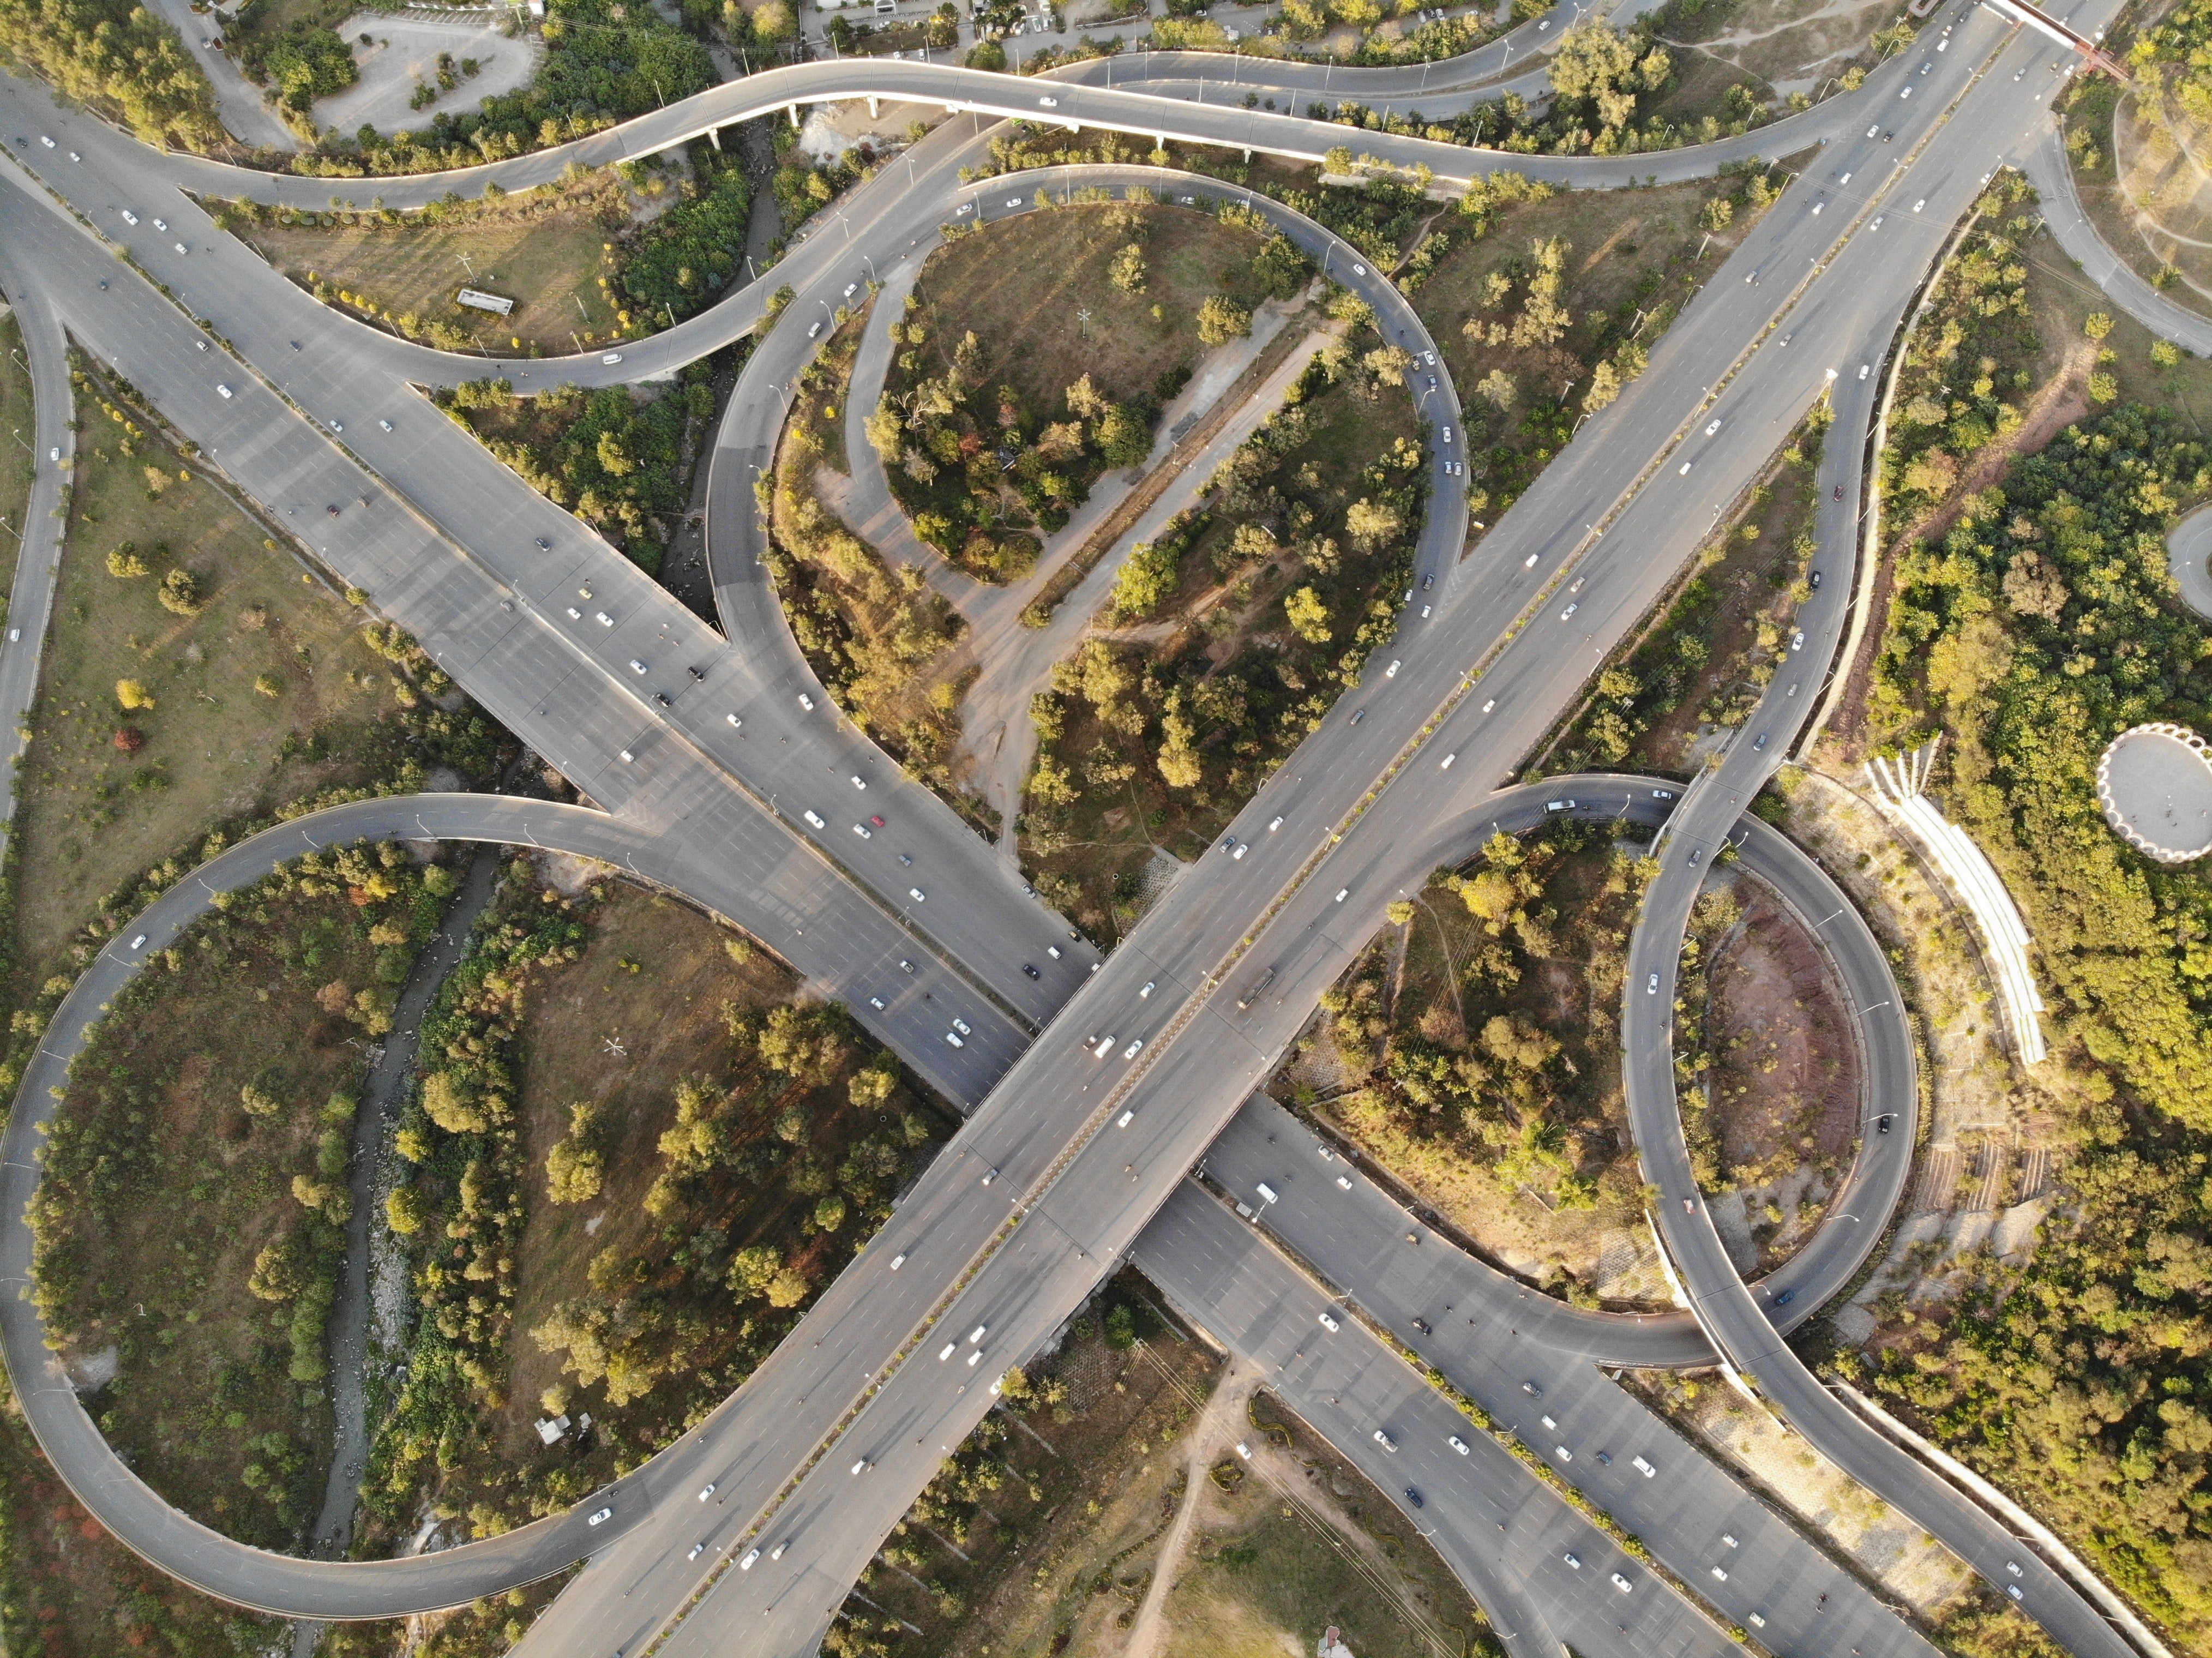 Pictured - An aerial photograph of a concrete road   Source: Pexels